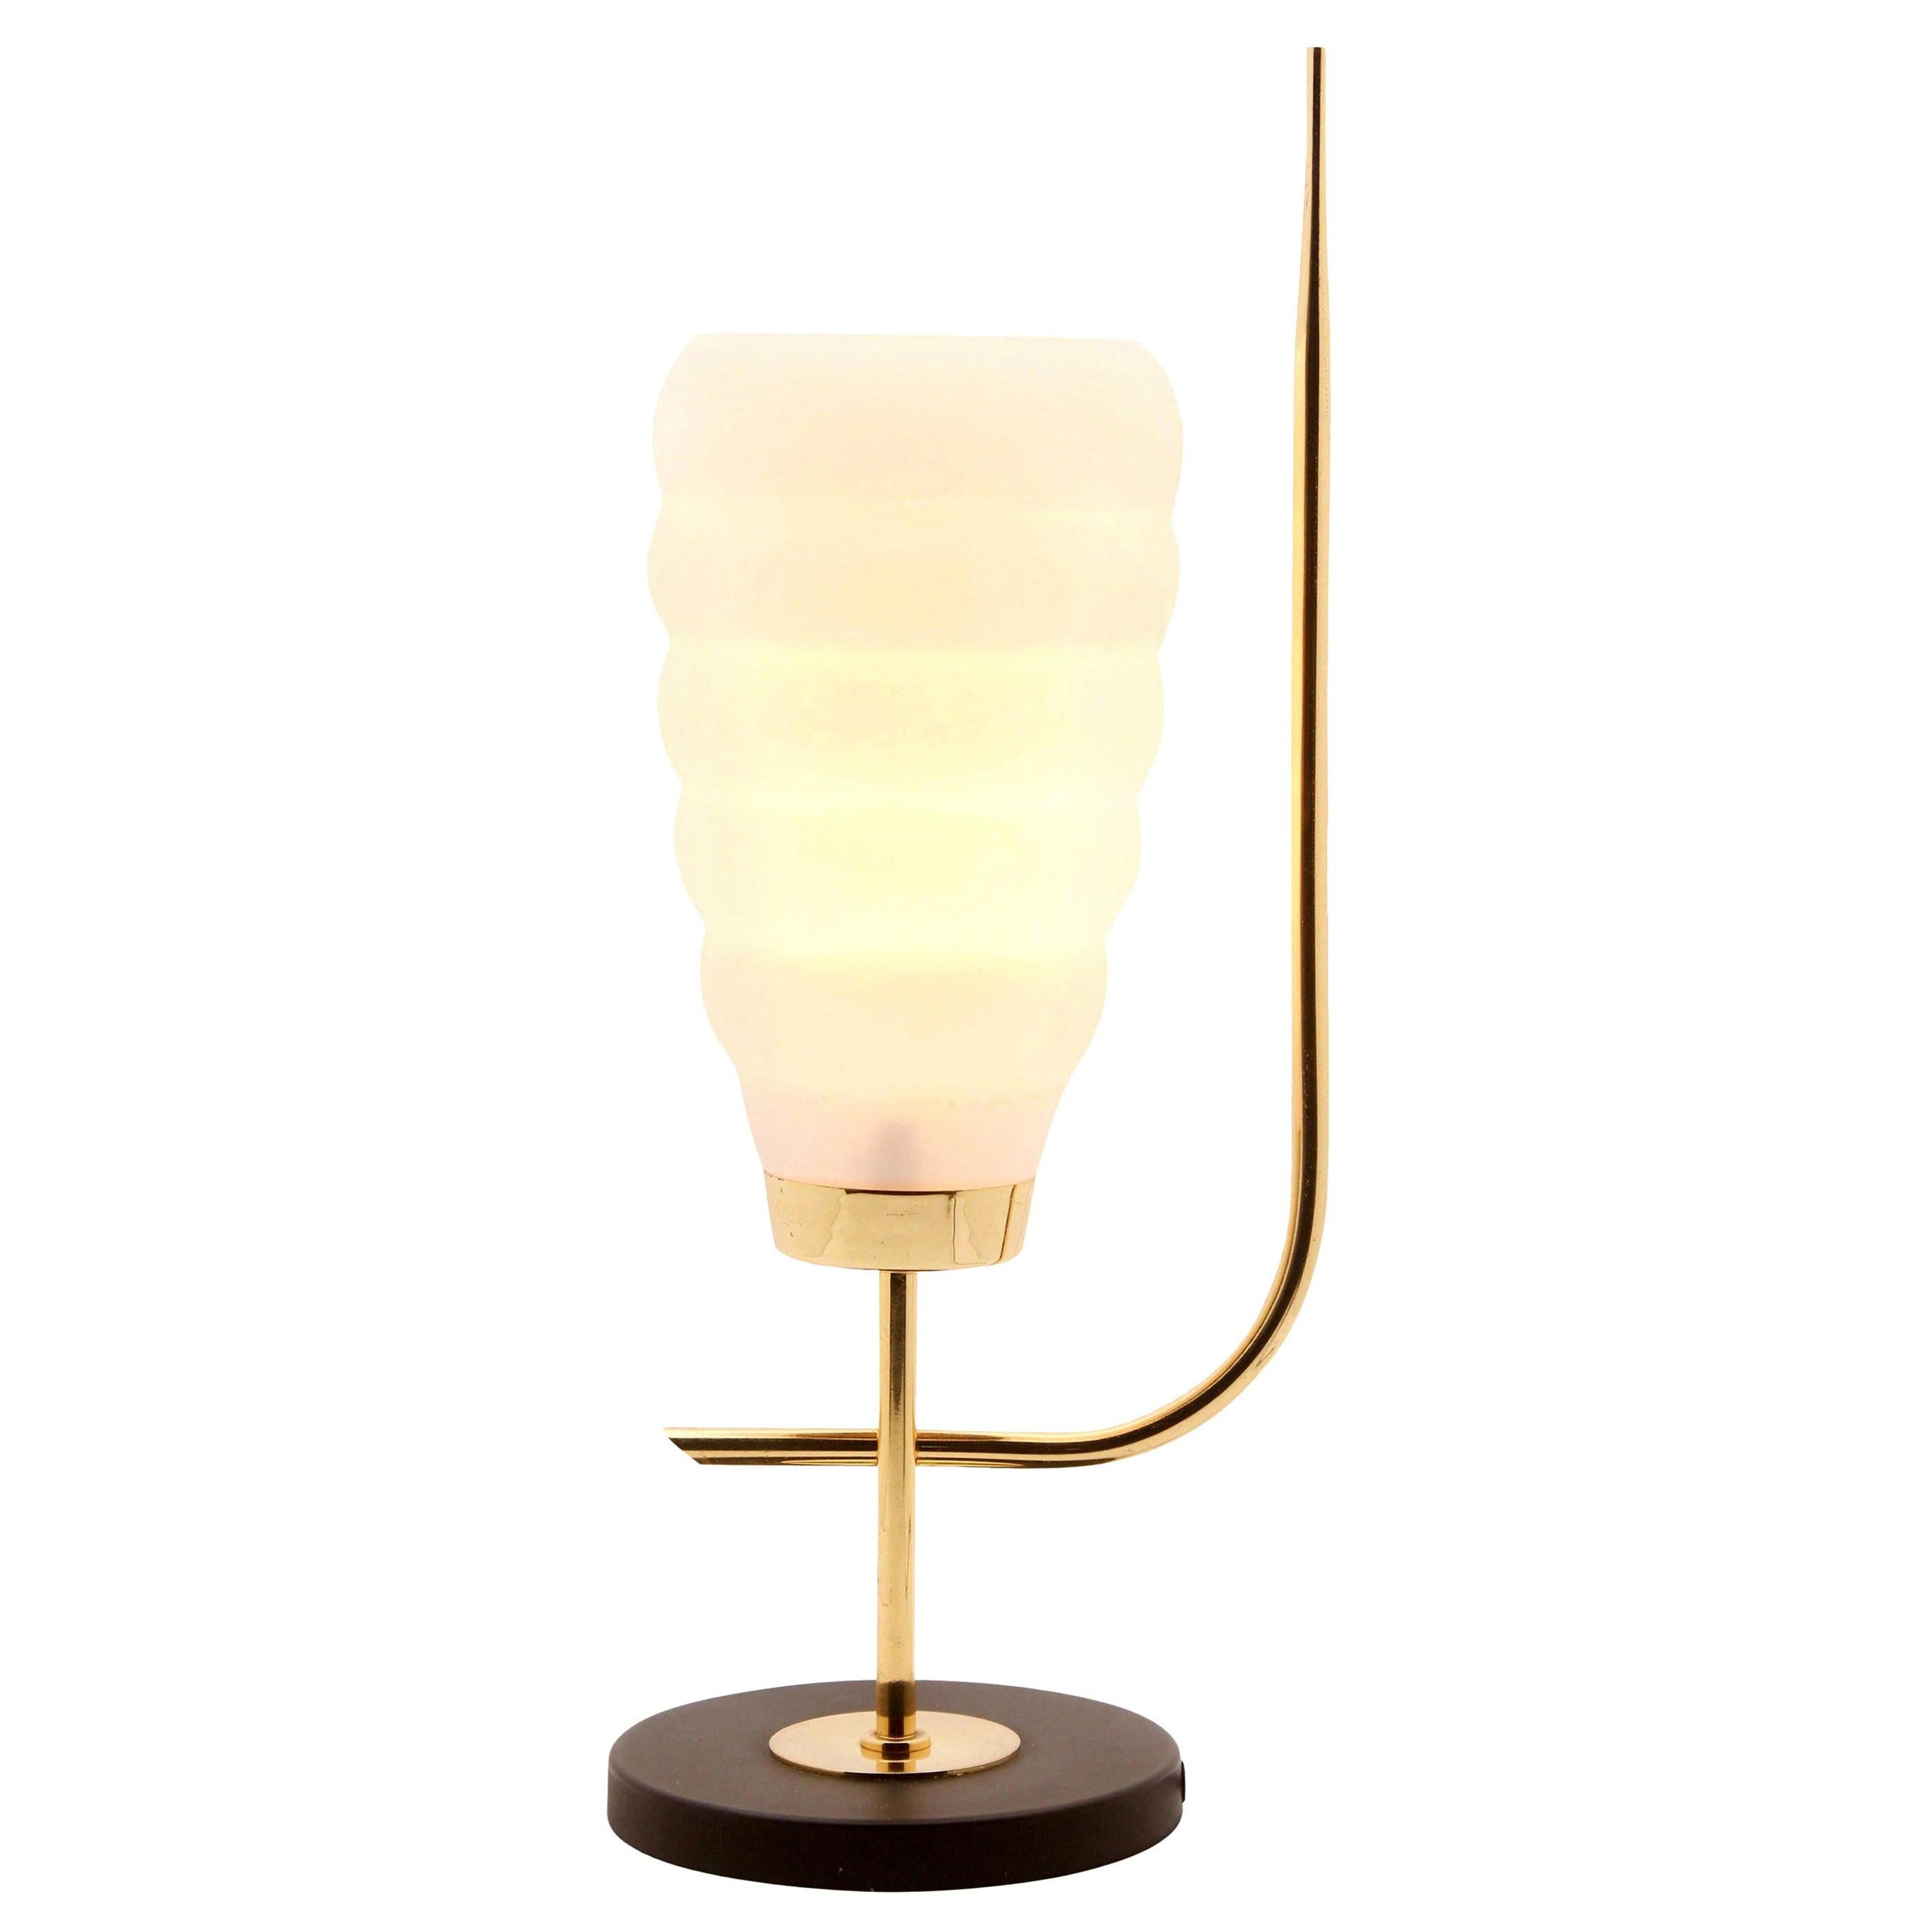 Scandinavian Design Table Lamp with Milk-White Glass Shade and Brass Mounts